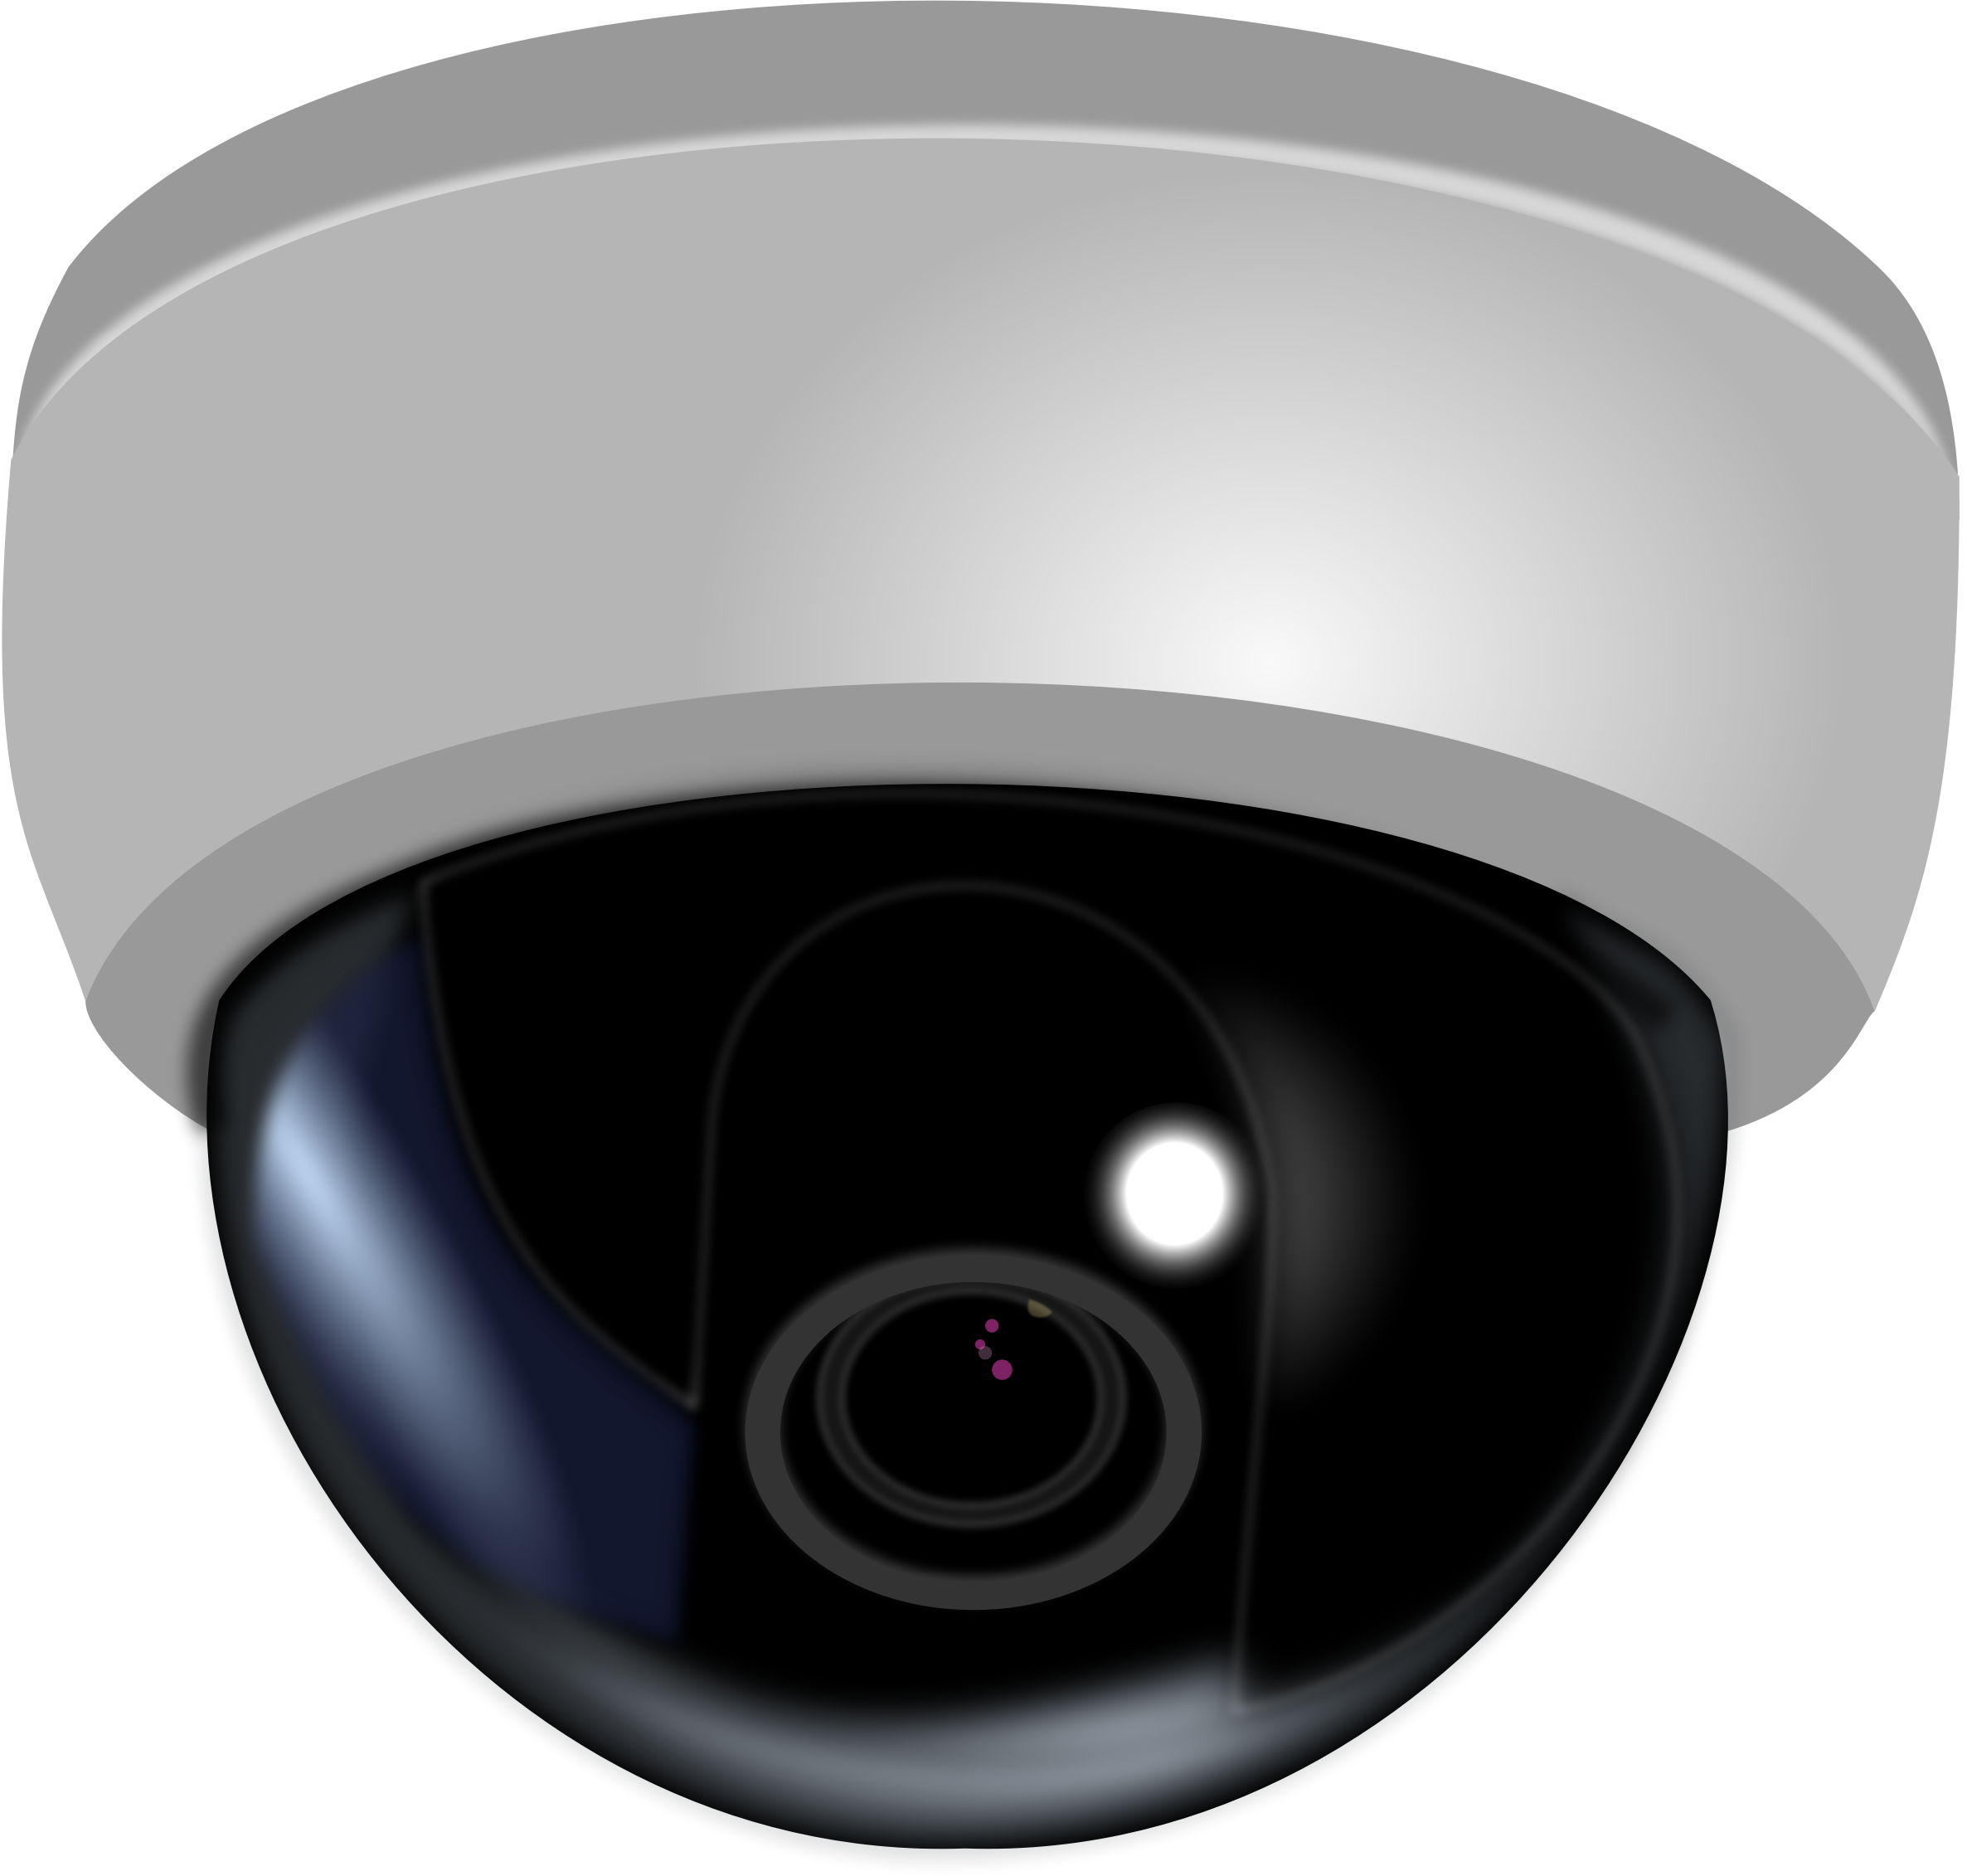 Security clipart security video camera. Ptz cctv